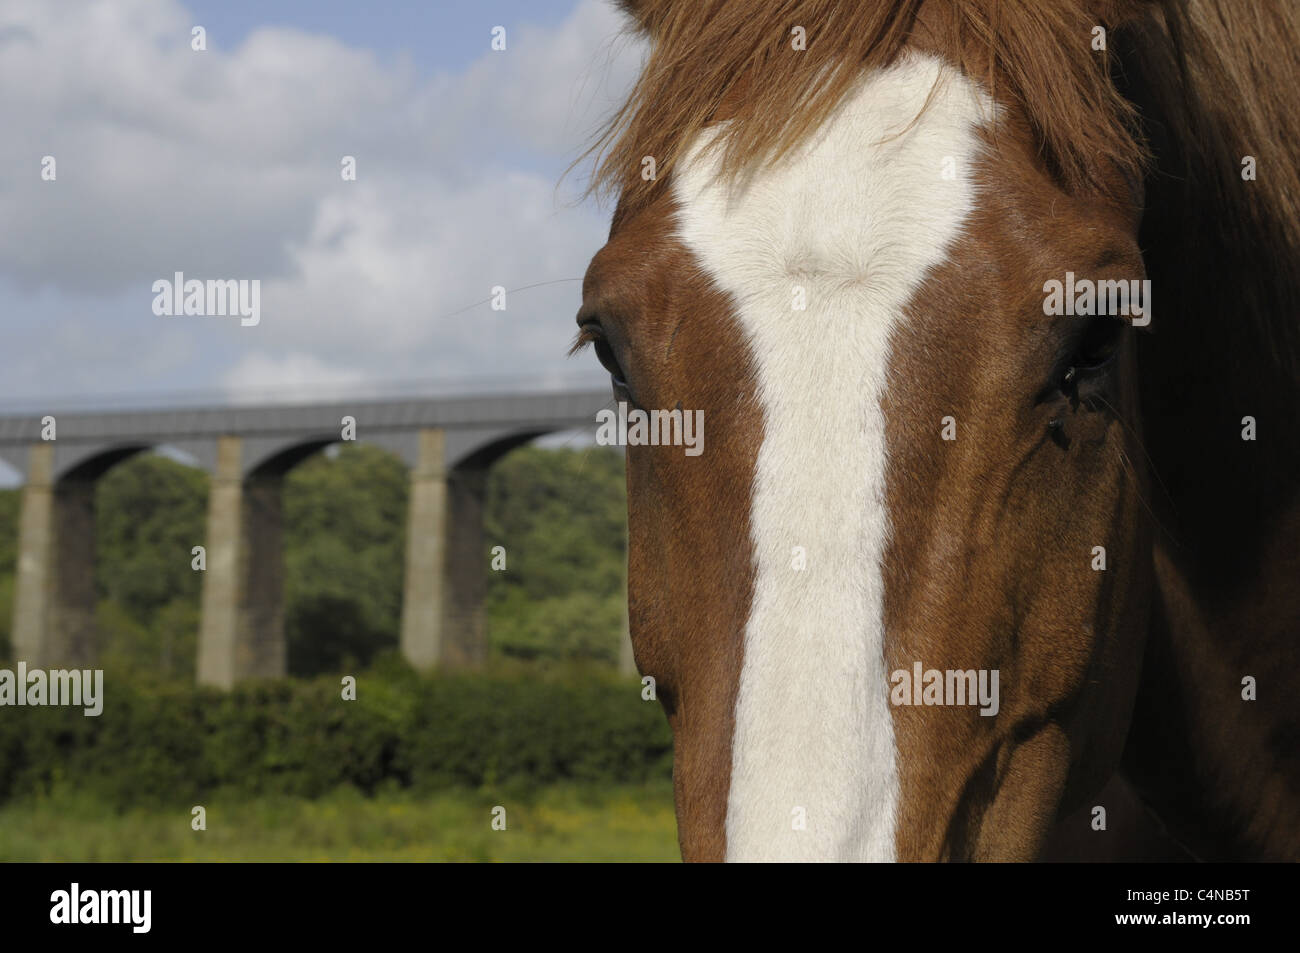 Horse with Pontycysyllte aquaduct in the background. - Stock Image